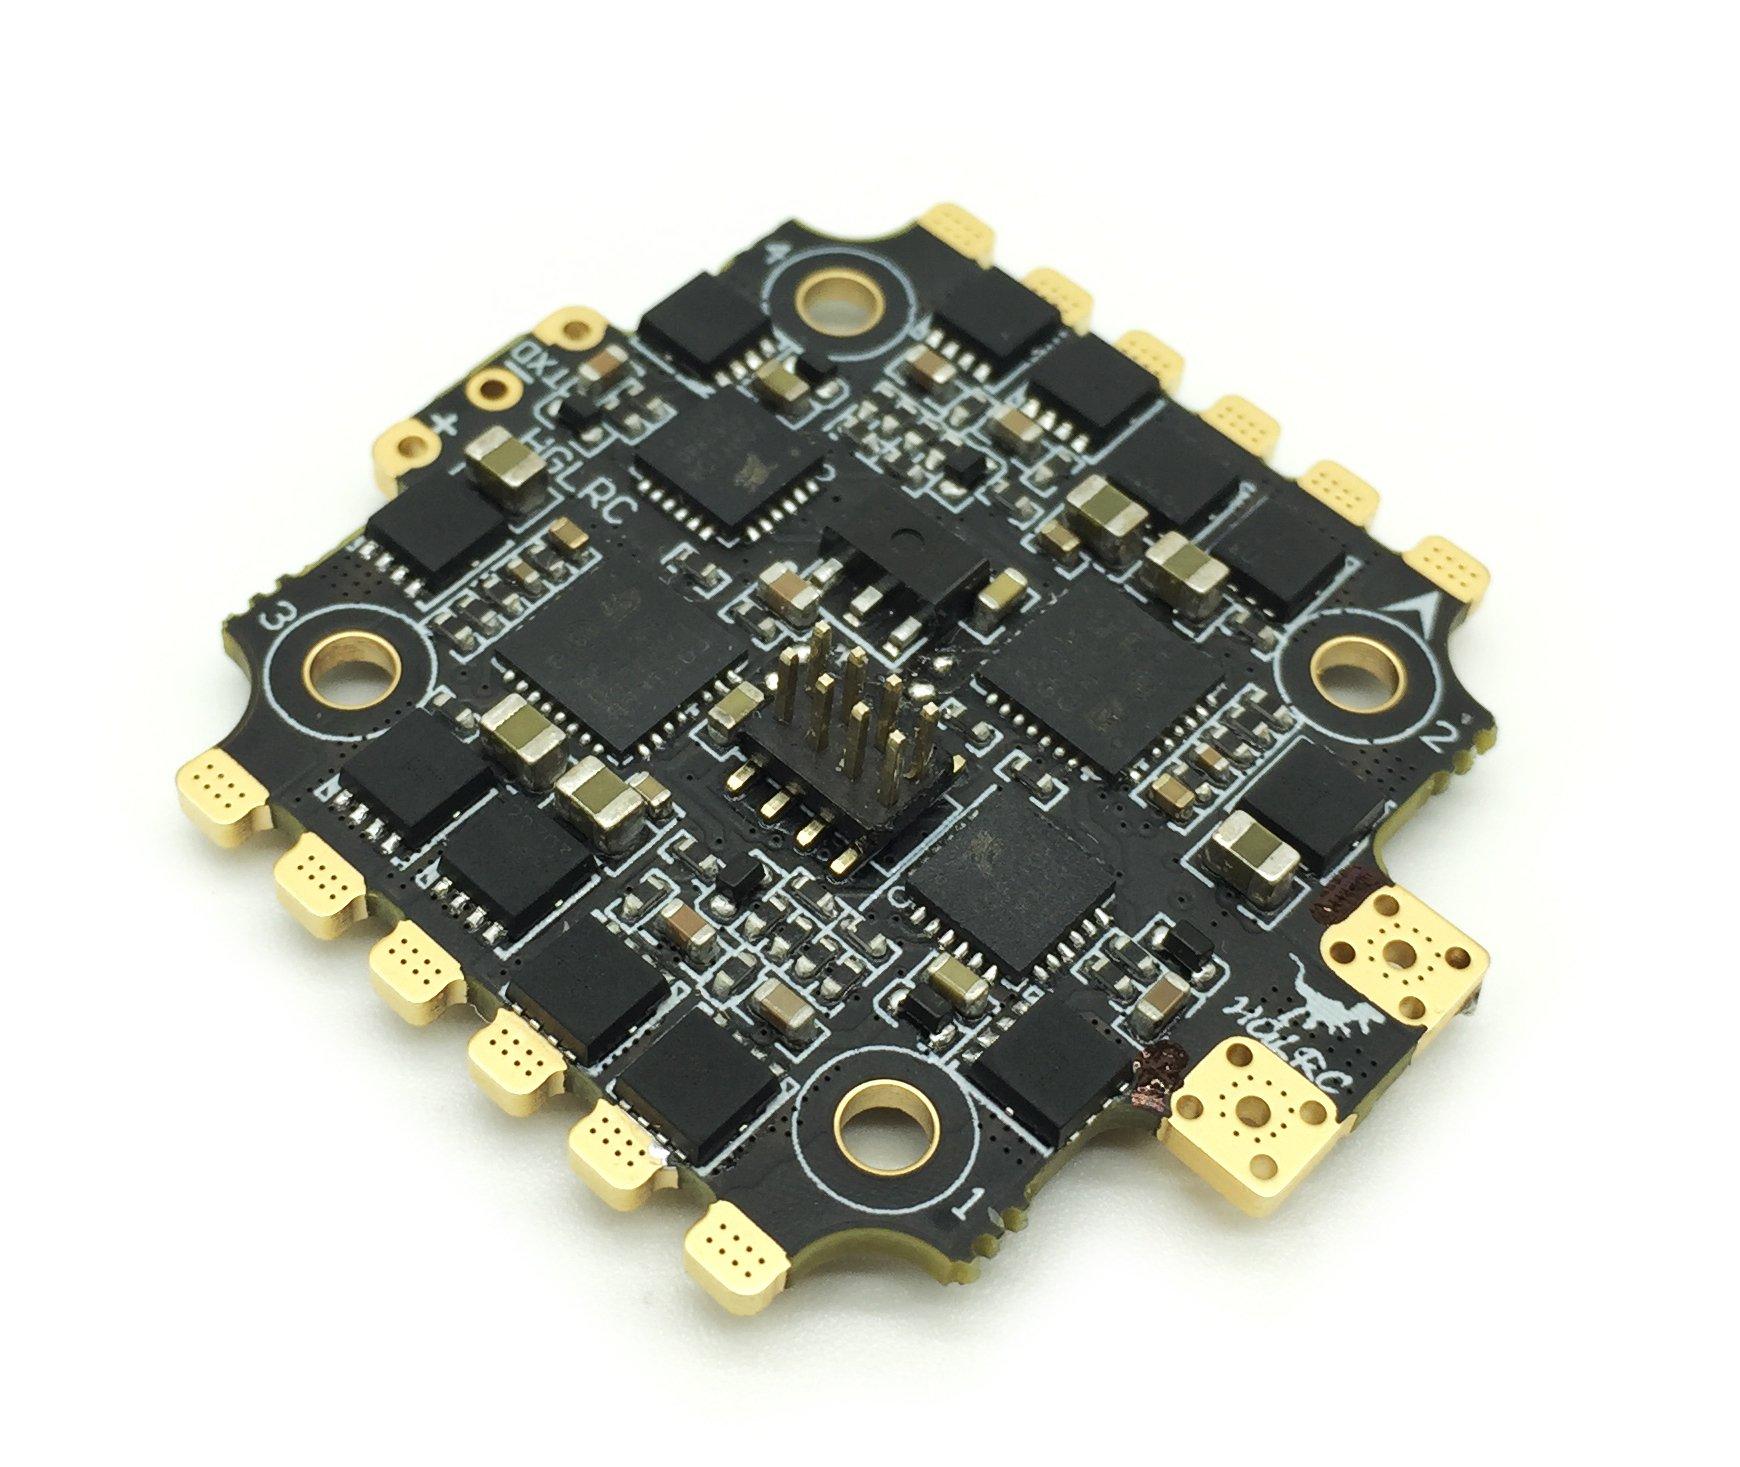 HGLRC DinoShot BLHeli_32 ESC Replacement for XJB F440 20X20mm